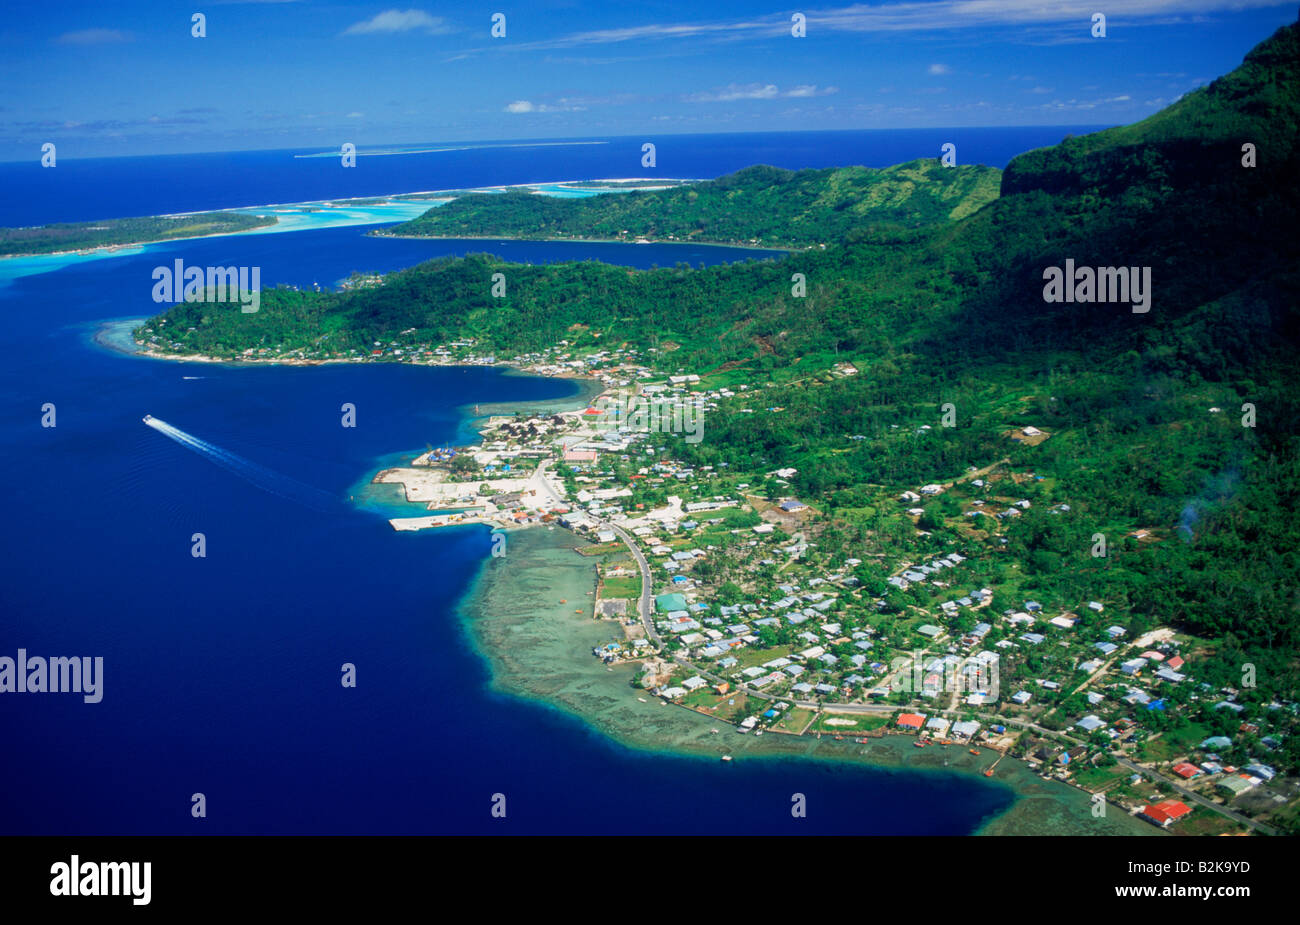 Aerial photo of bora bora with main town of vaitape on for What to buy in bora bora